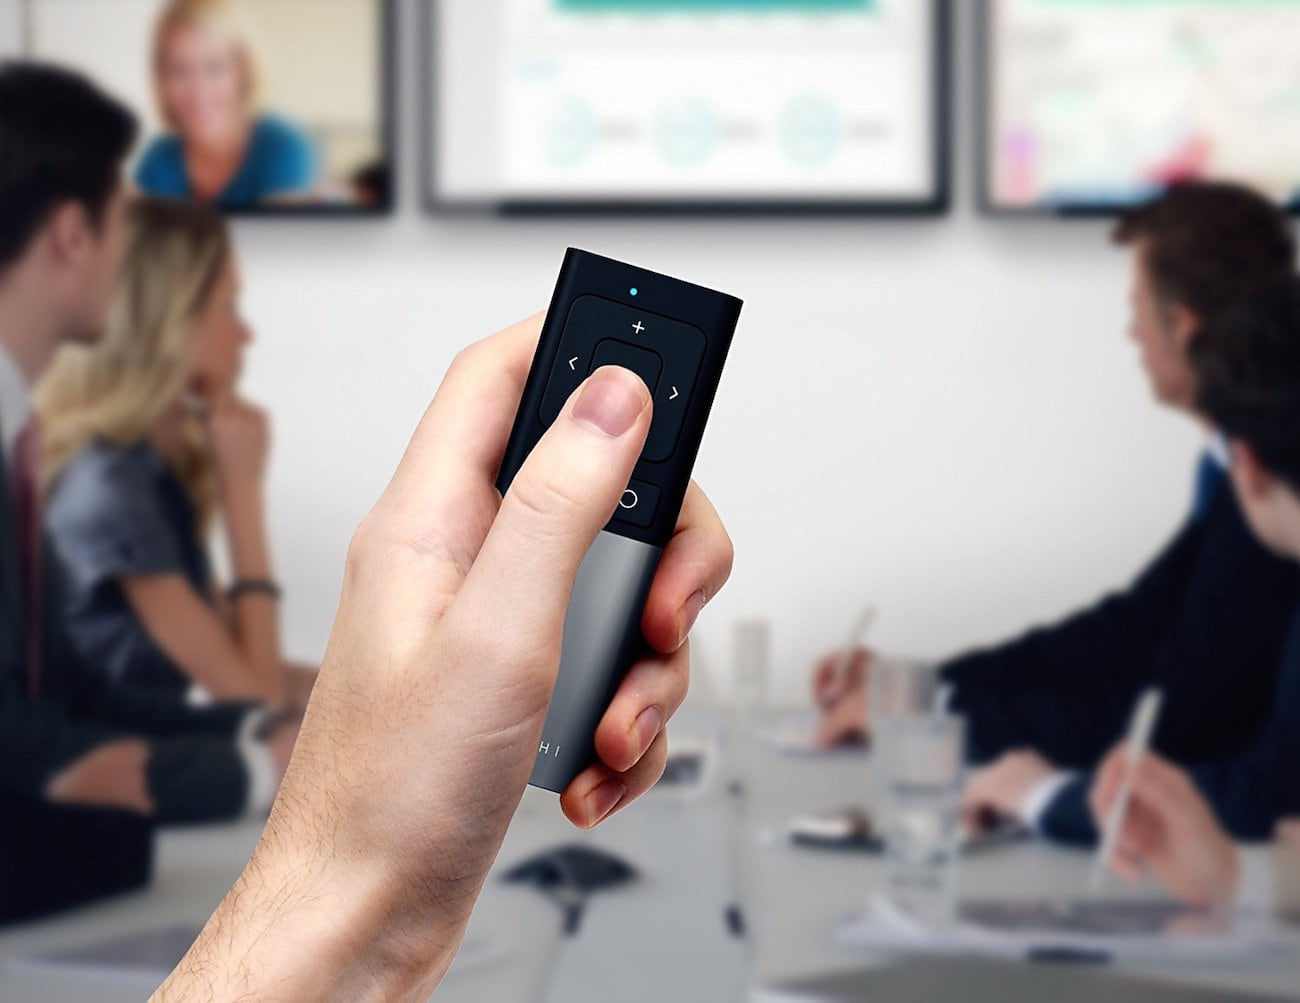 Satechi Aluminum Wireless Multimedia Remote Control works with every Bluetooth device you own